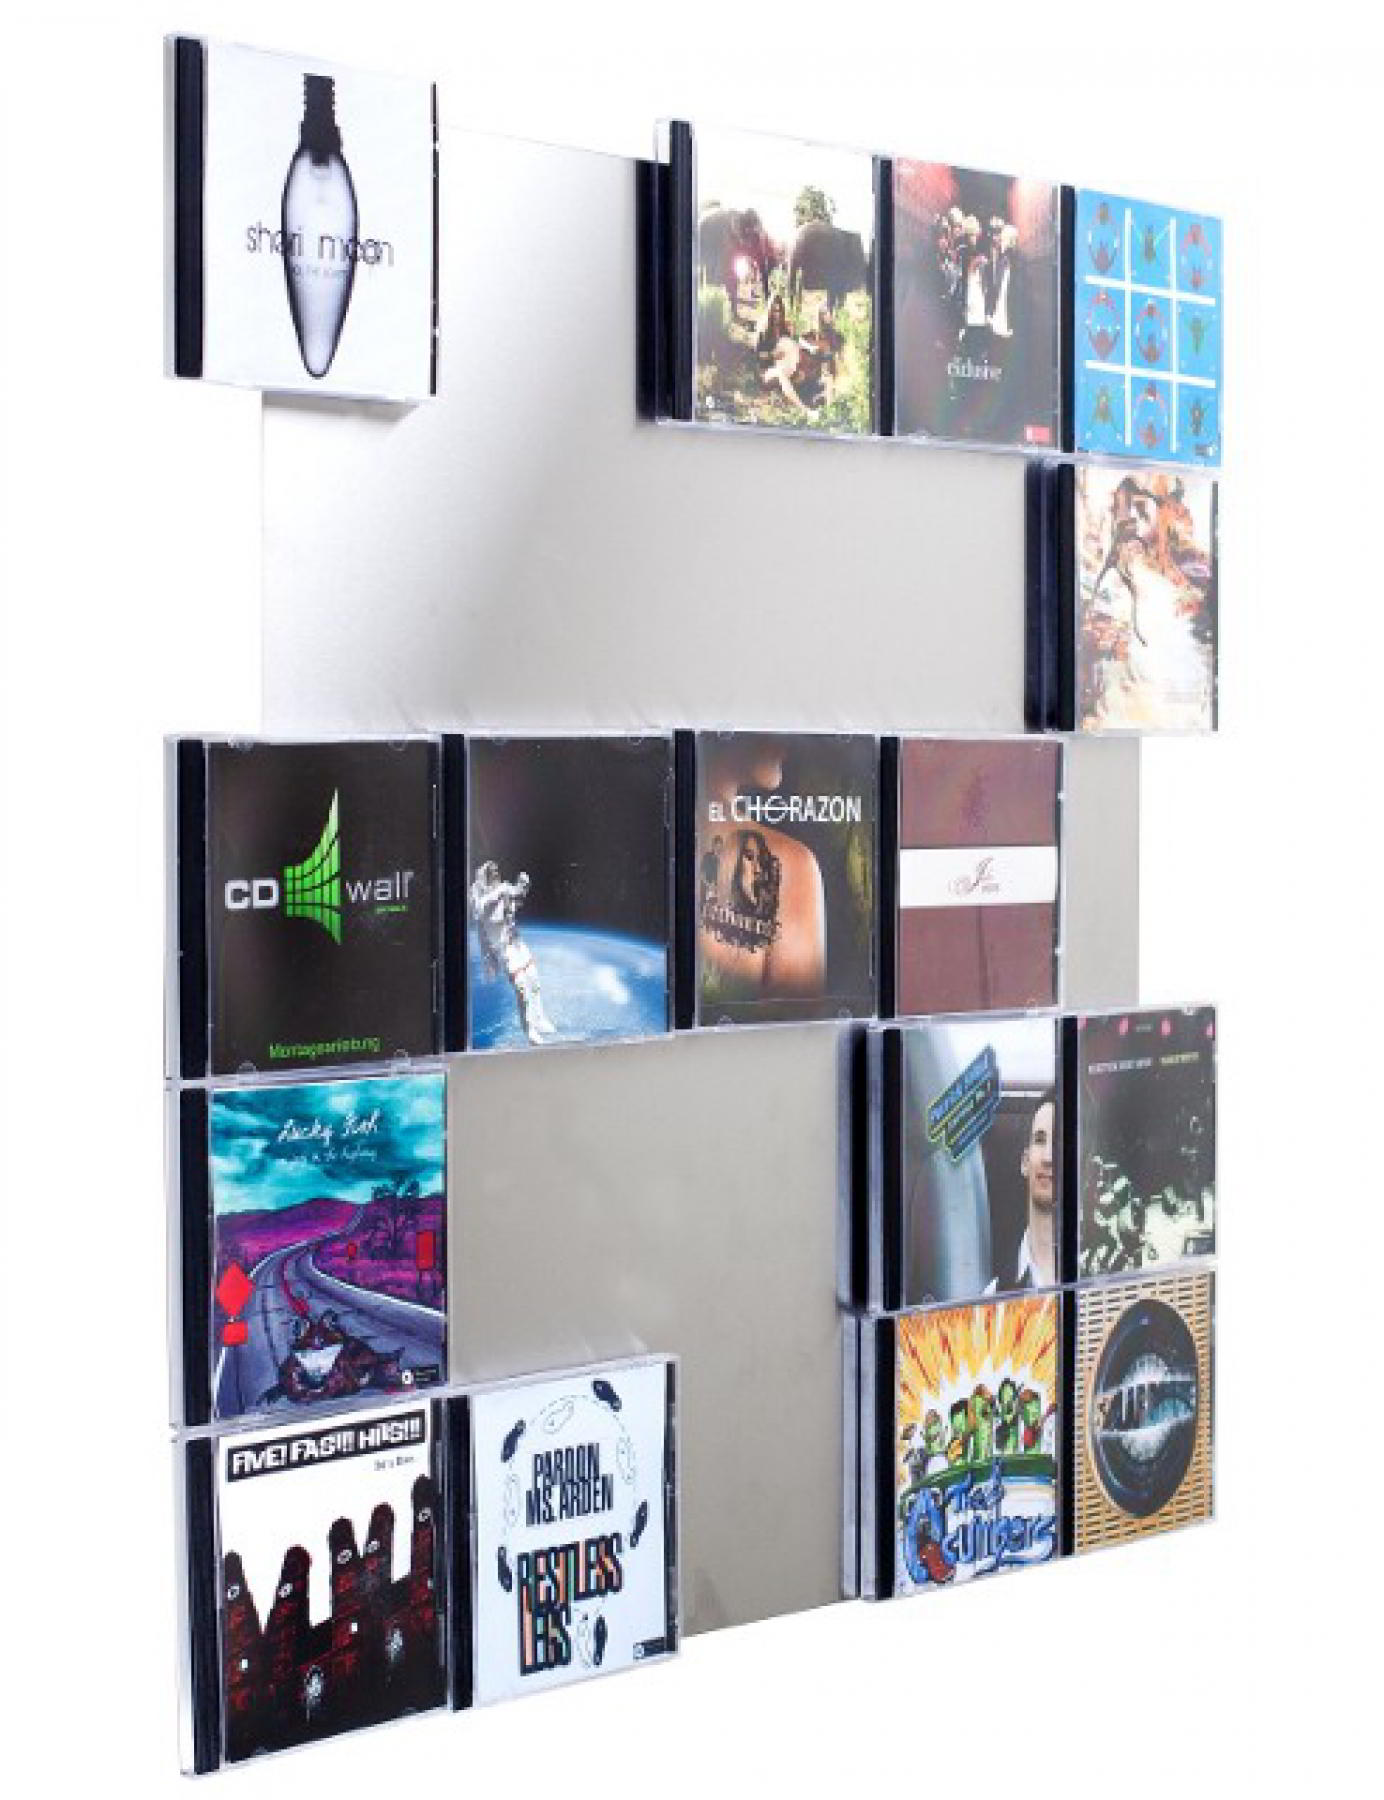 The picture shows our CD-Wall shelf CD Wall5x5